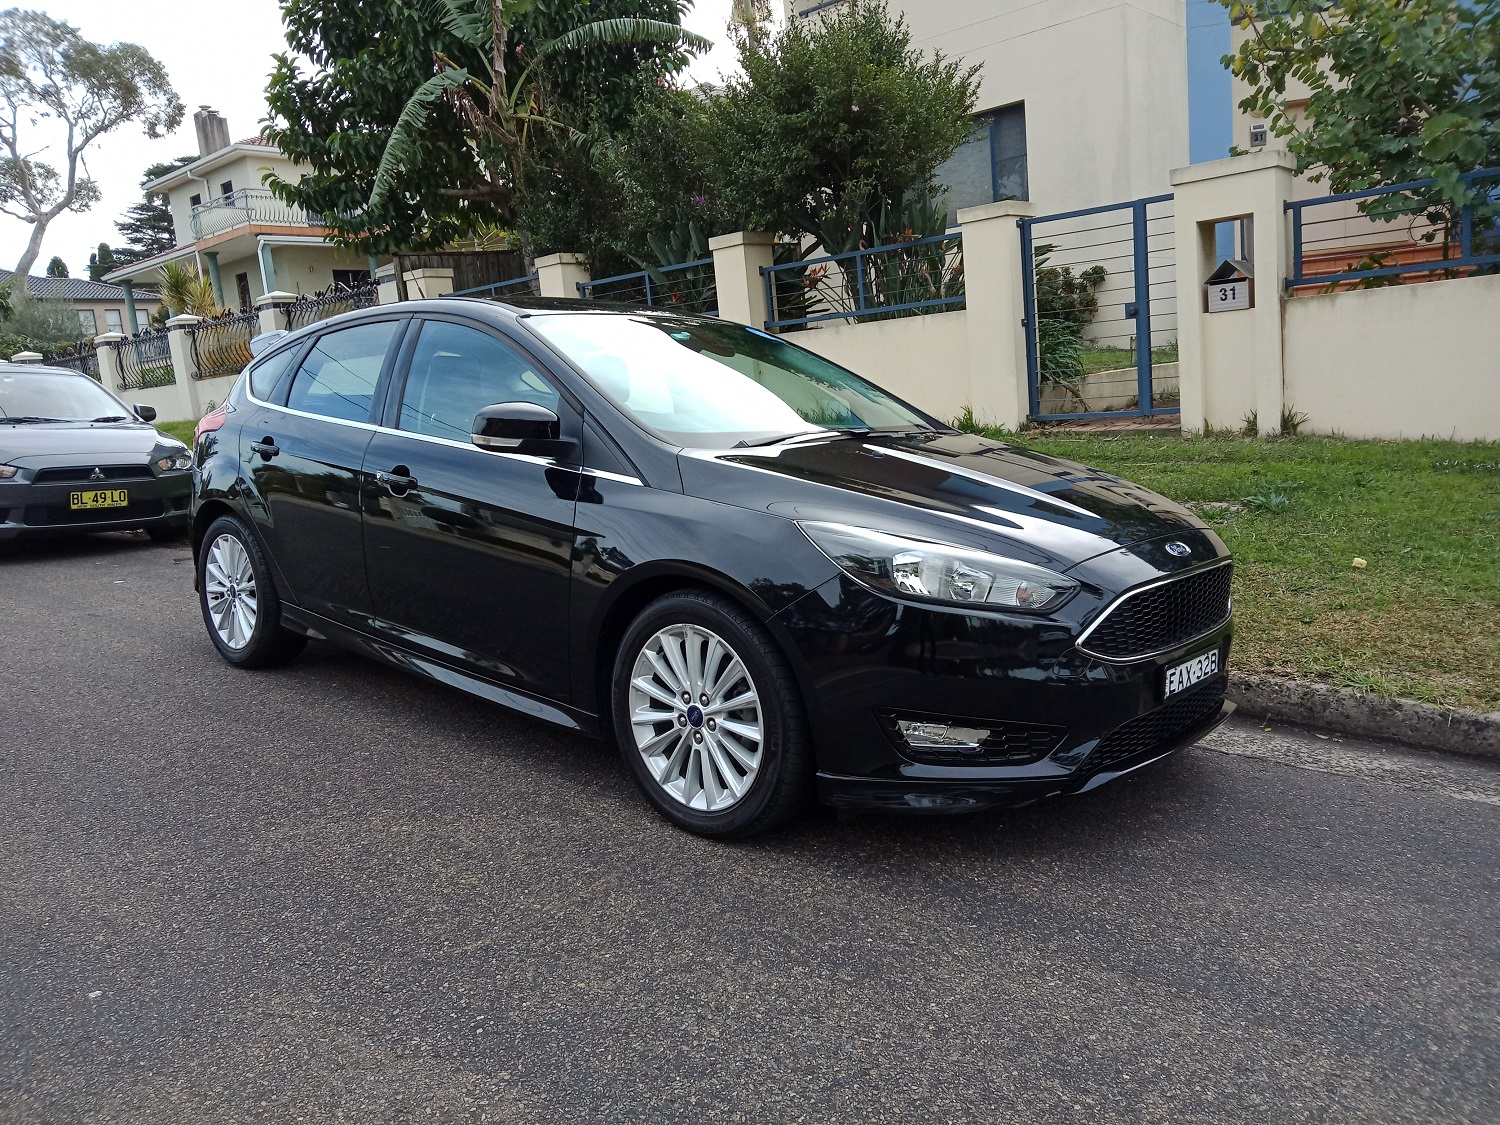 Picture of Bianca's 2016 Ford Focus Sport